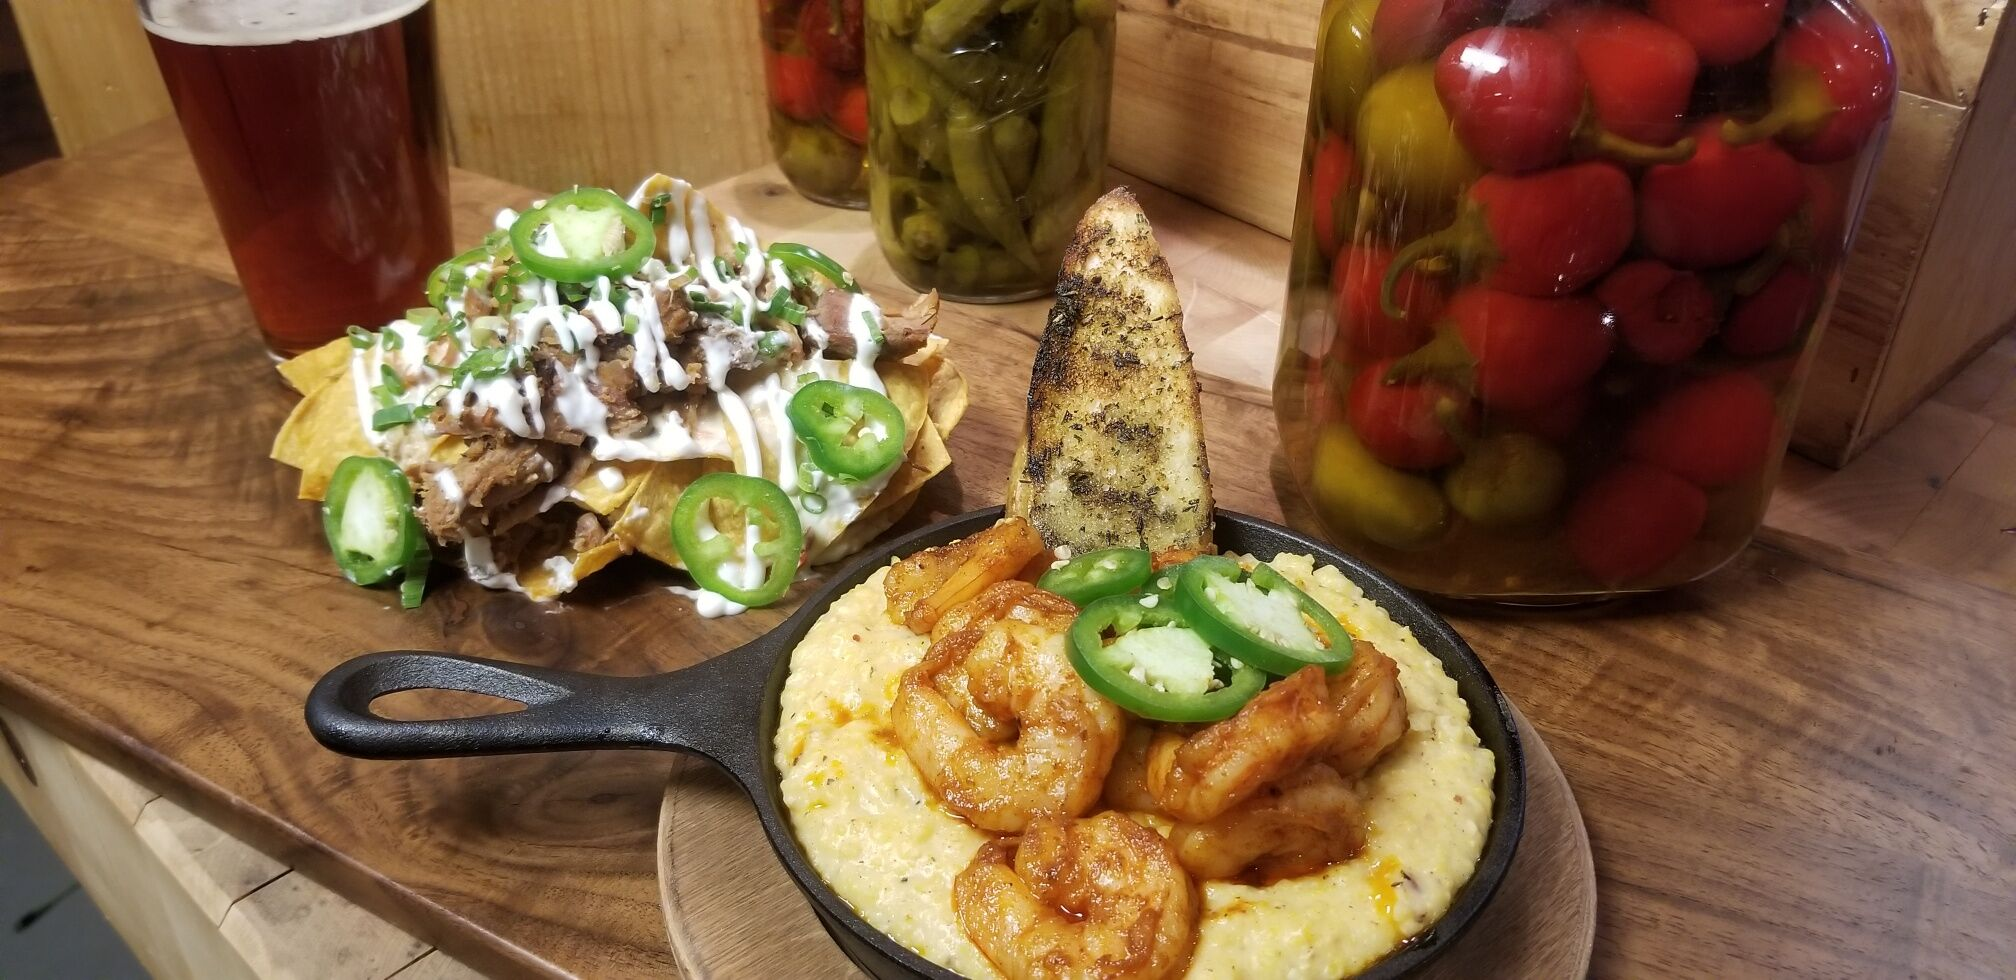 NBA All-Star Menu highlights some of the best bites from around the league